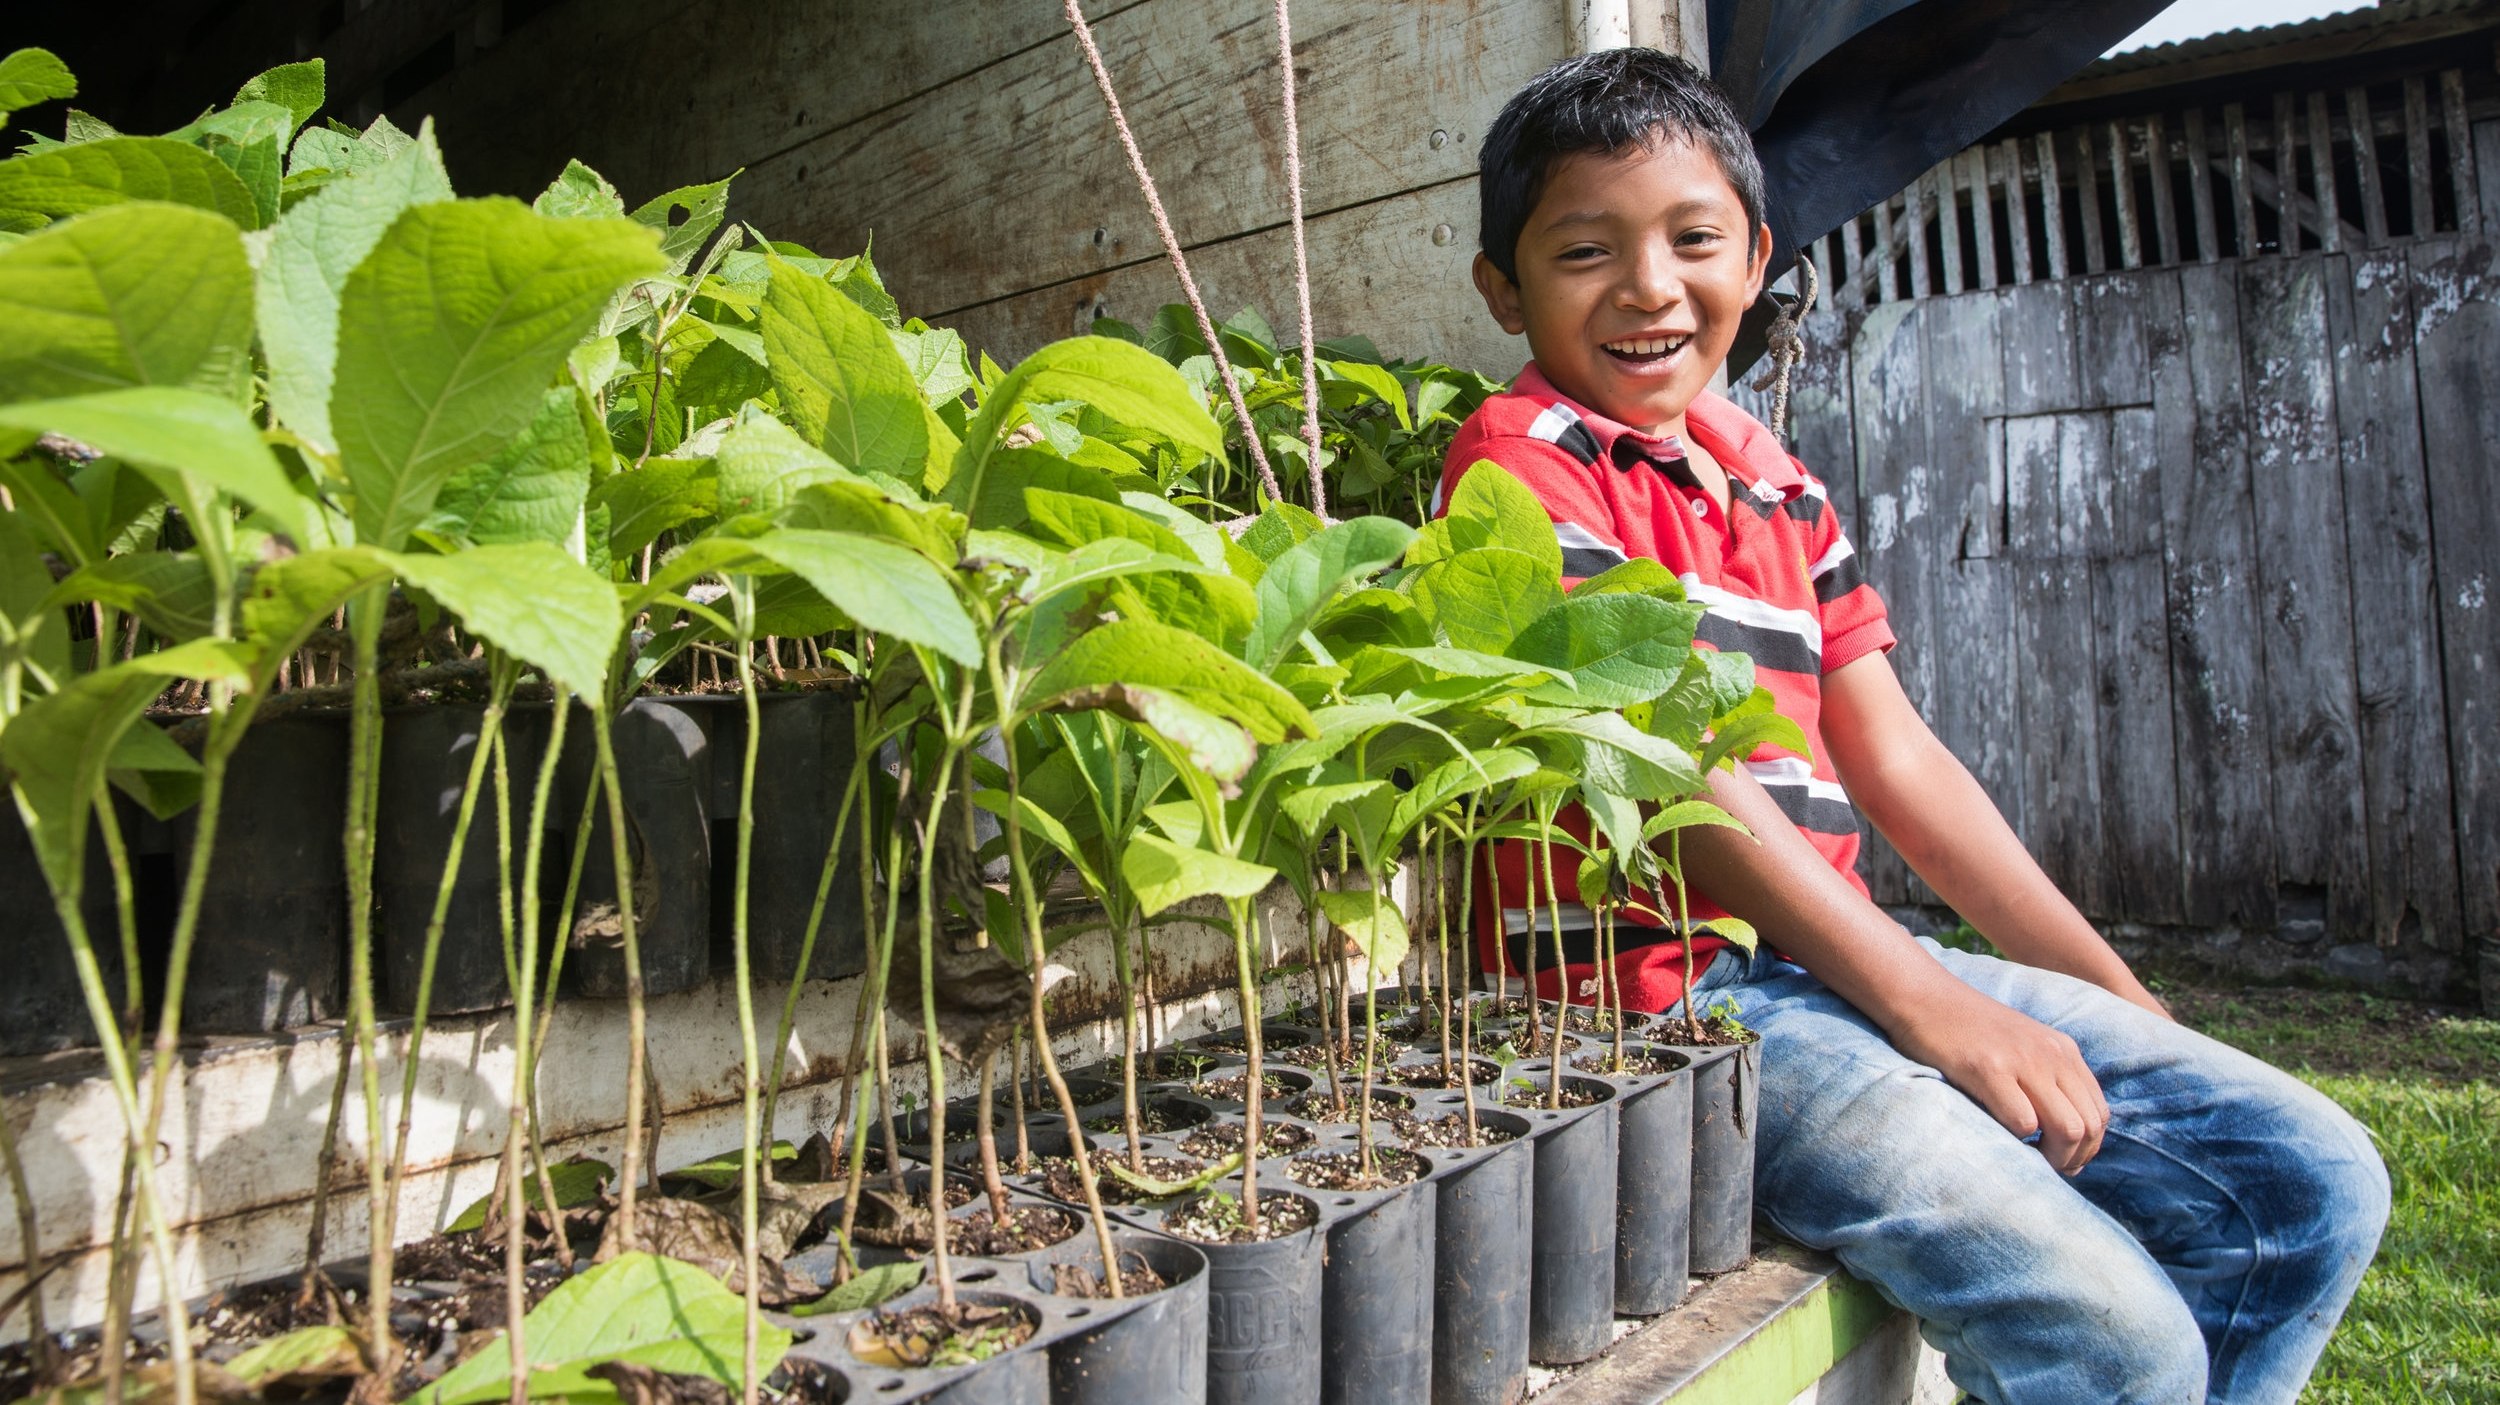 $1 = 1 Tree - We partner with One Tree Planted to reforest across Guatemala